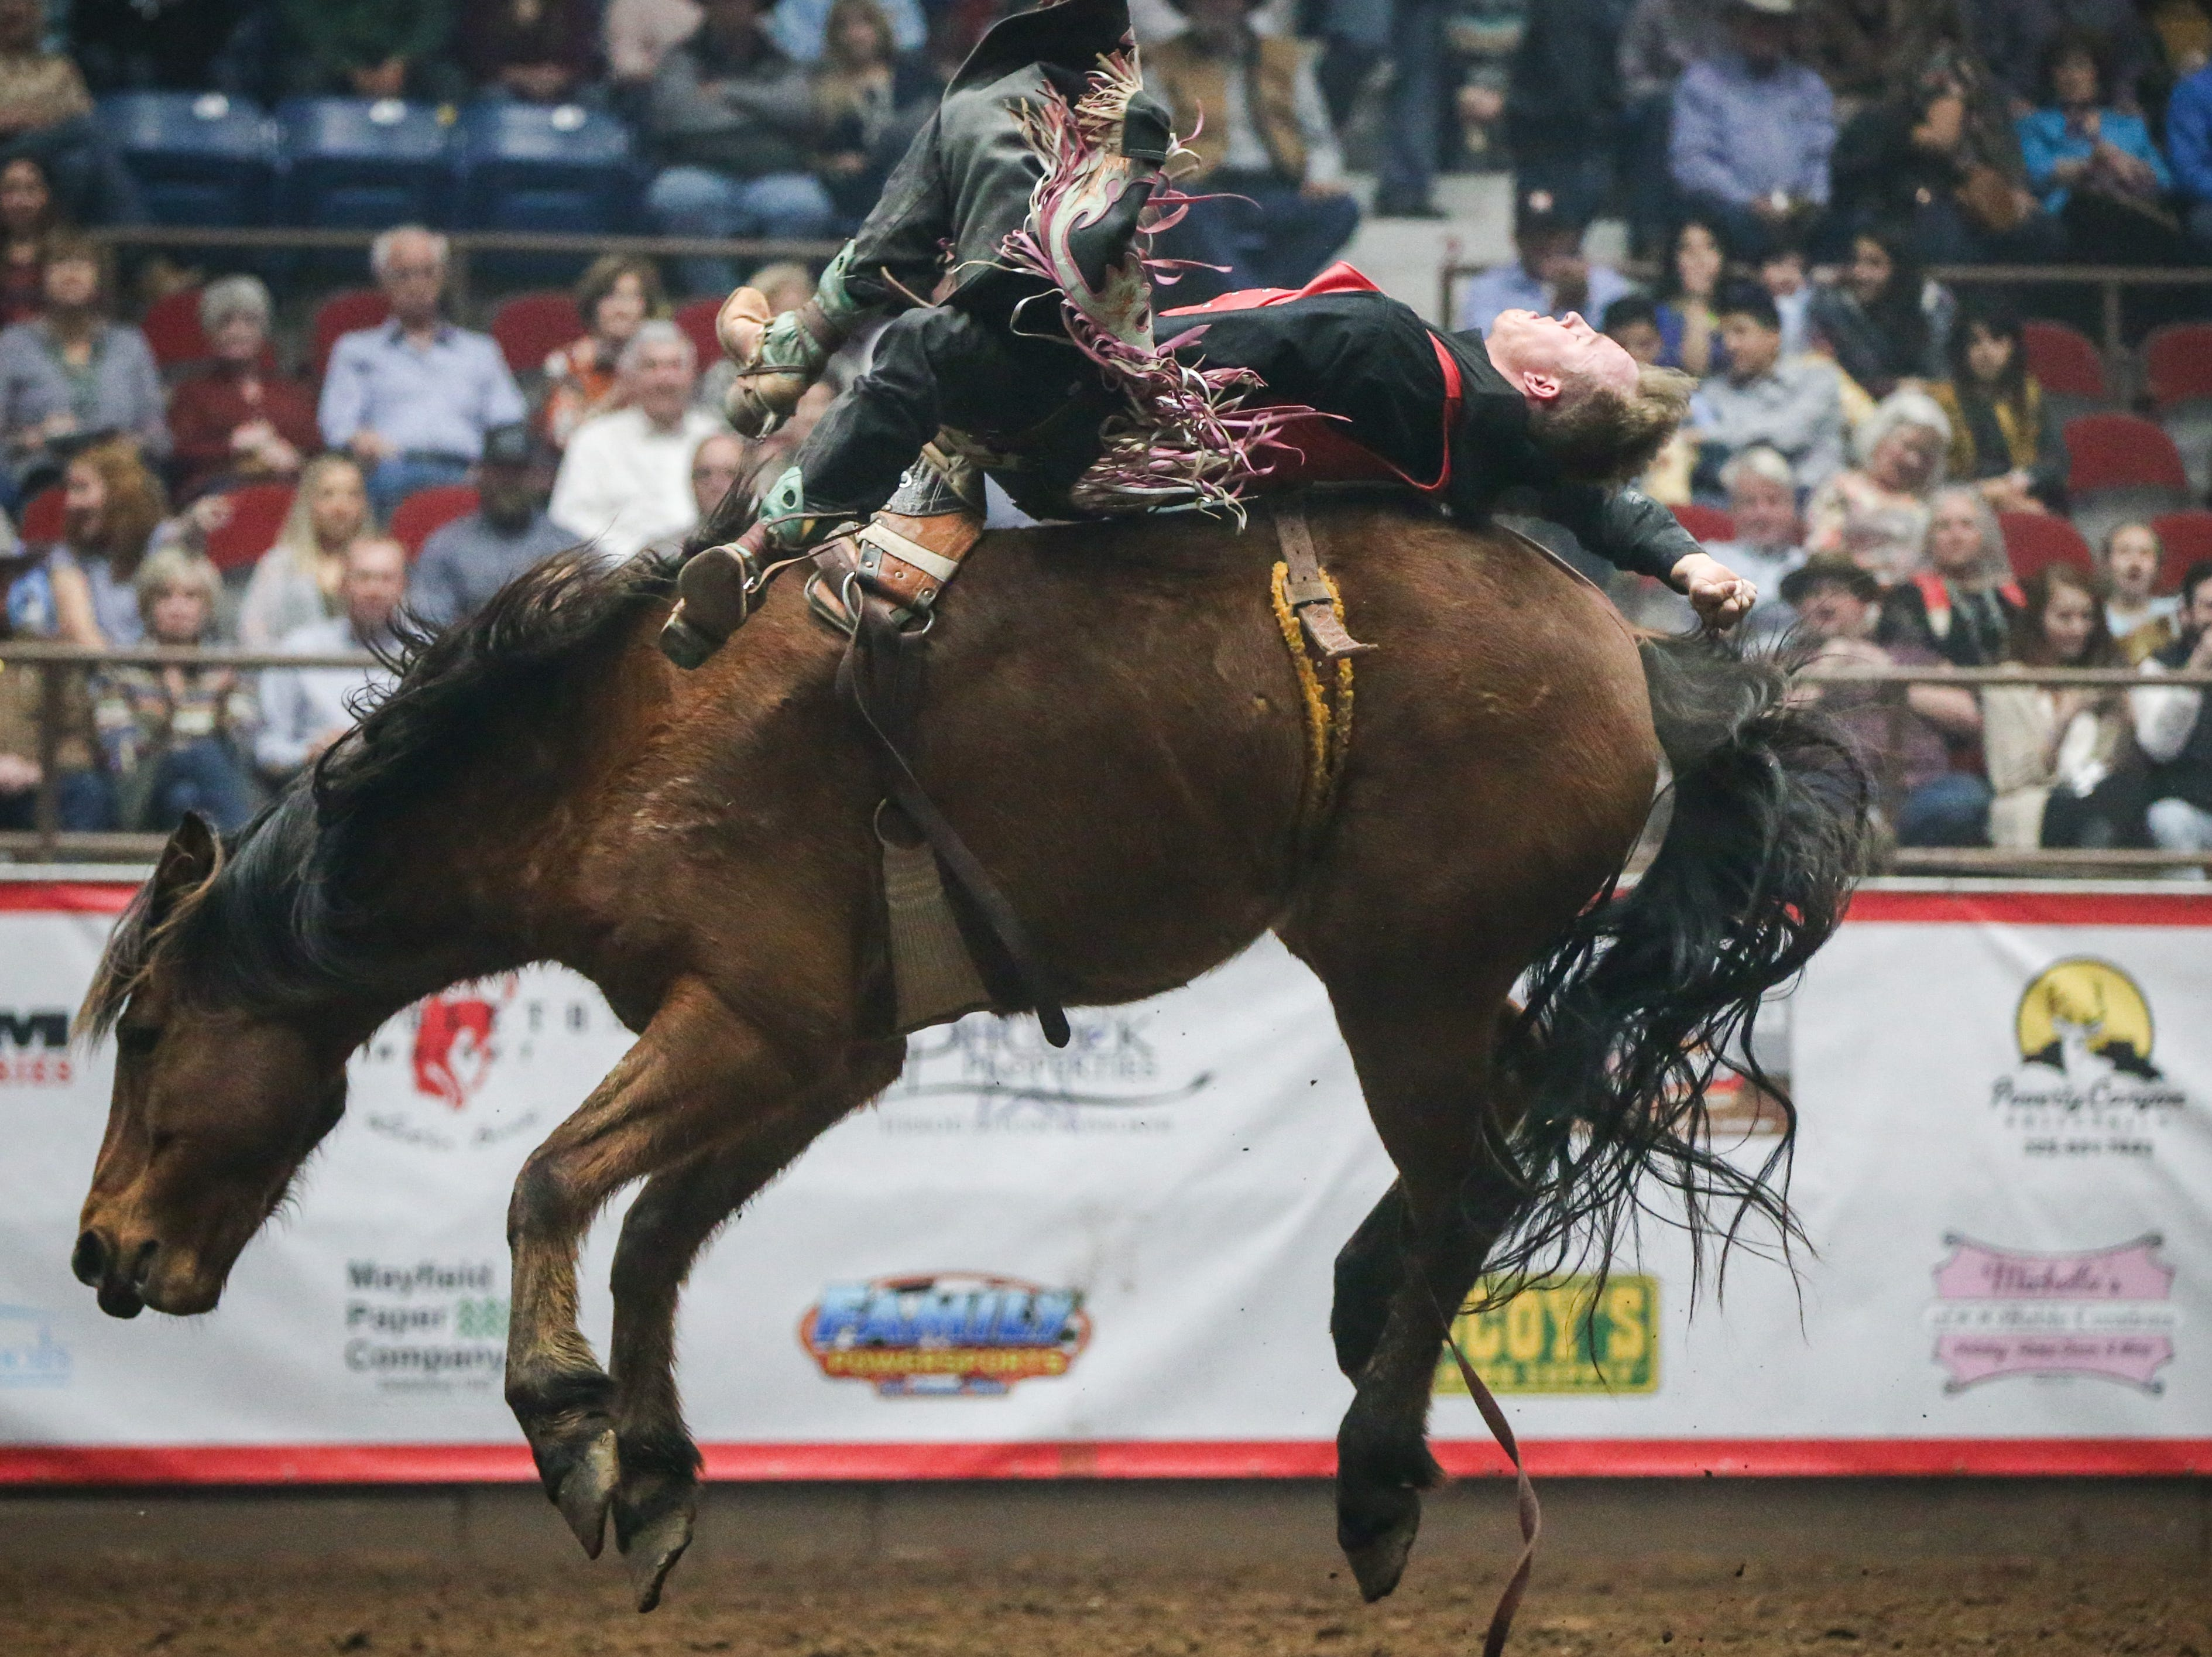 Hunter Brasfield rides bareback on Lady's Man during finals of the San Angelo Stock Show & Rodeo Friday, Feb. 15, 2019, at Foster Communications Coliseum.